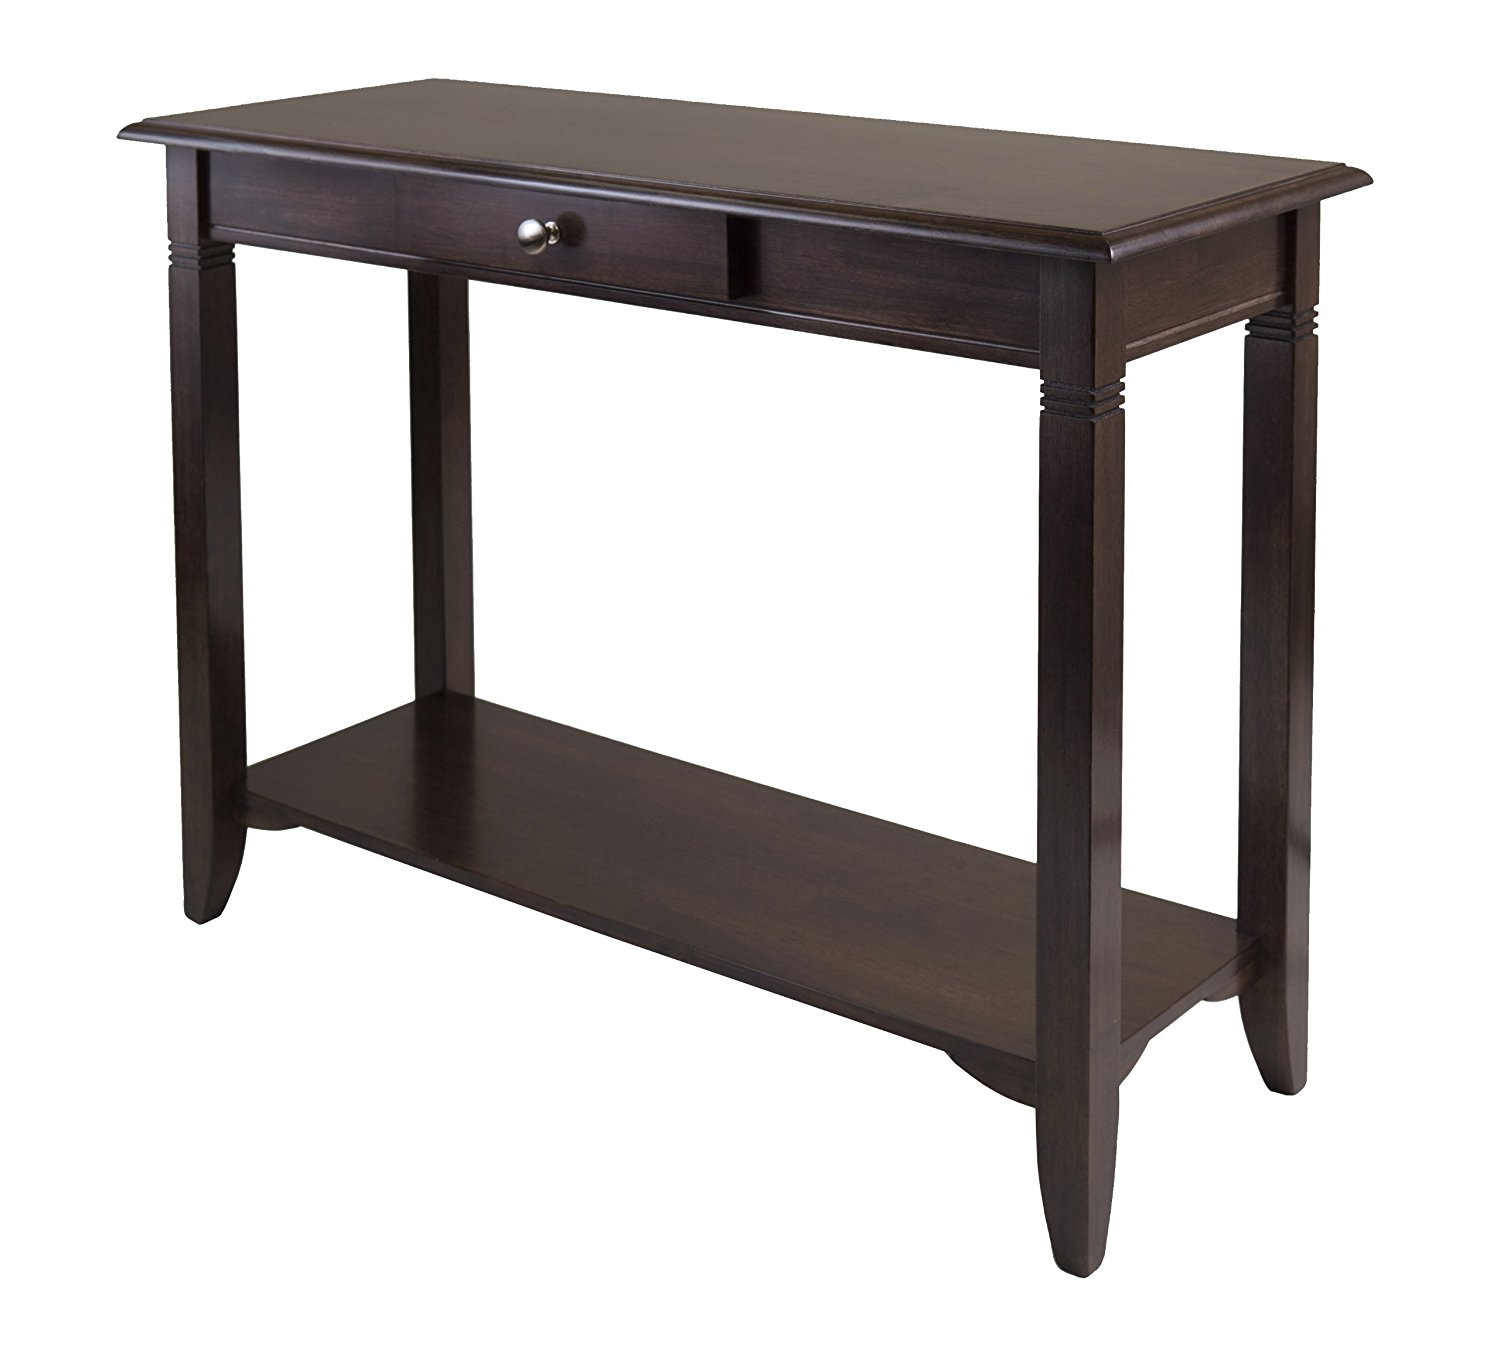 living room extra long console table with storage and narrow sofa drawers glass slim white accent drawer full size plastic folding side rustic furniture teak outdoor dining loft